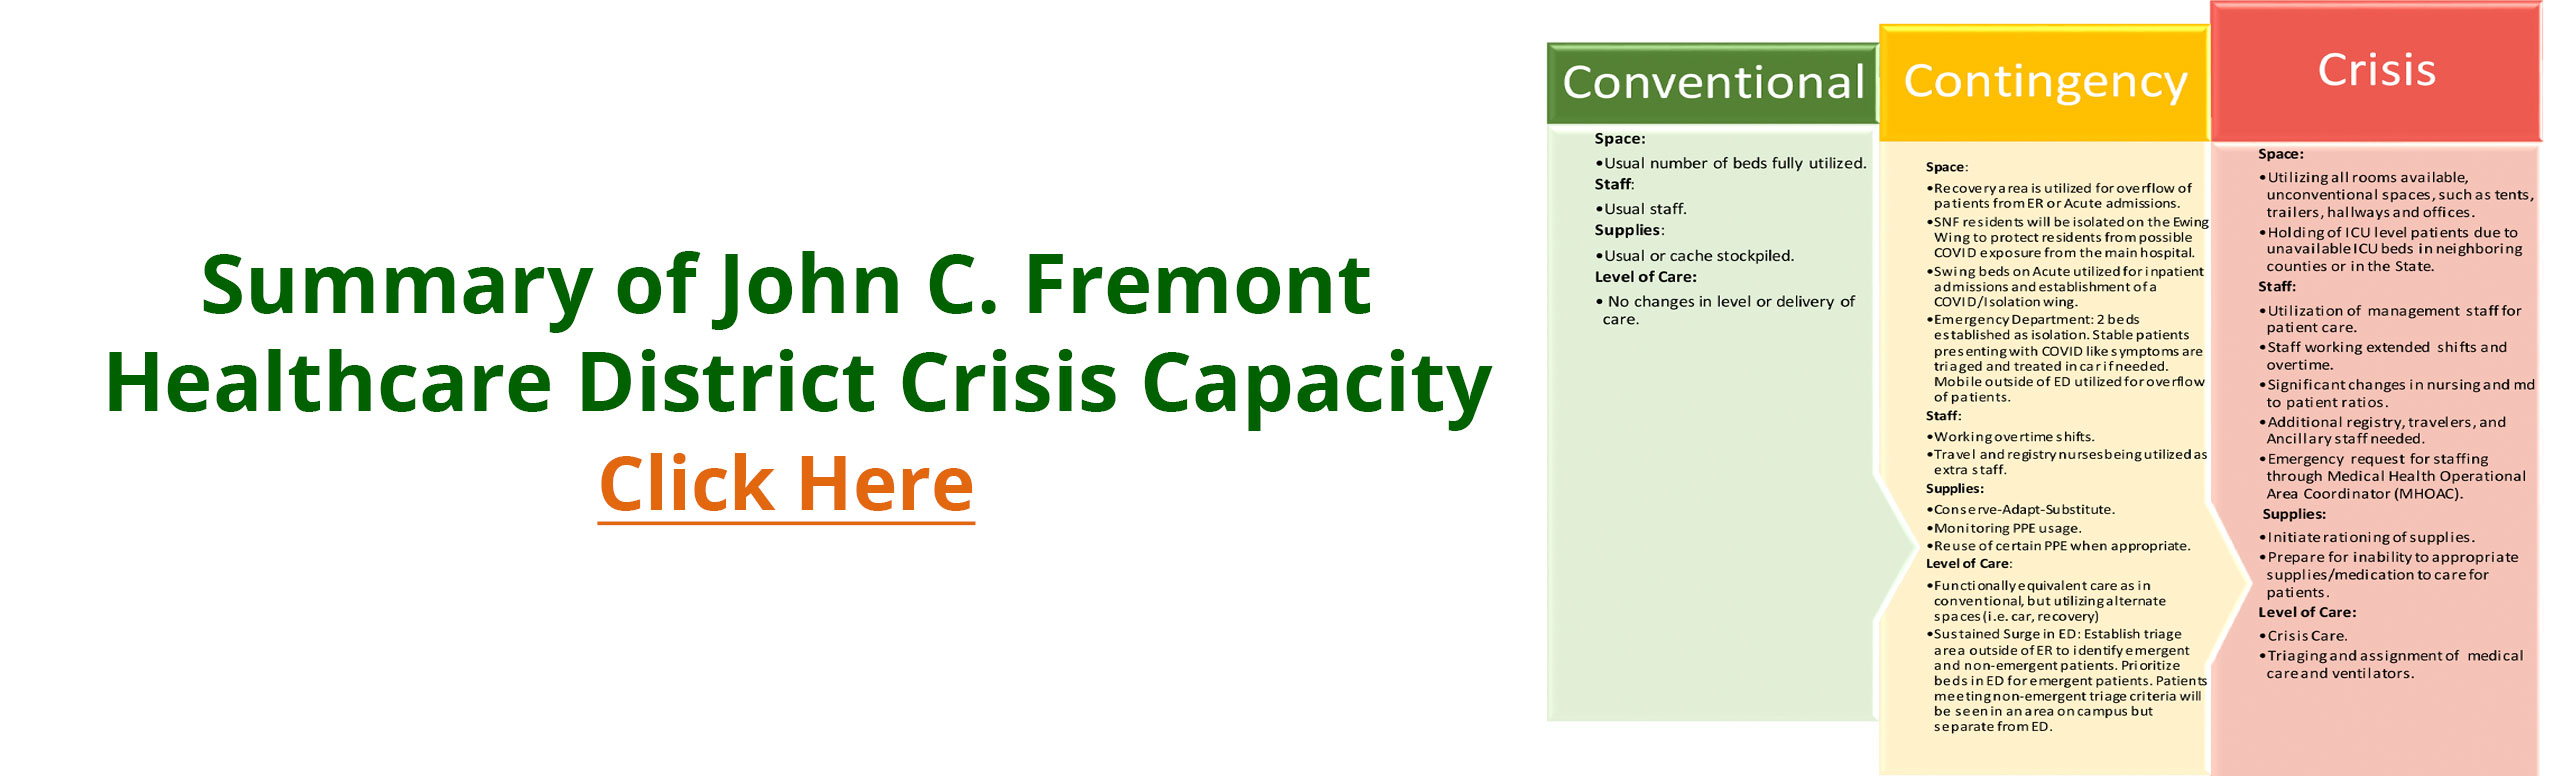 Summary of John C. Fremont Healthcare District Crisis Capacity. Click here